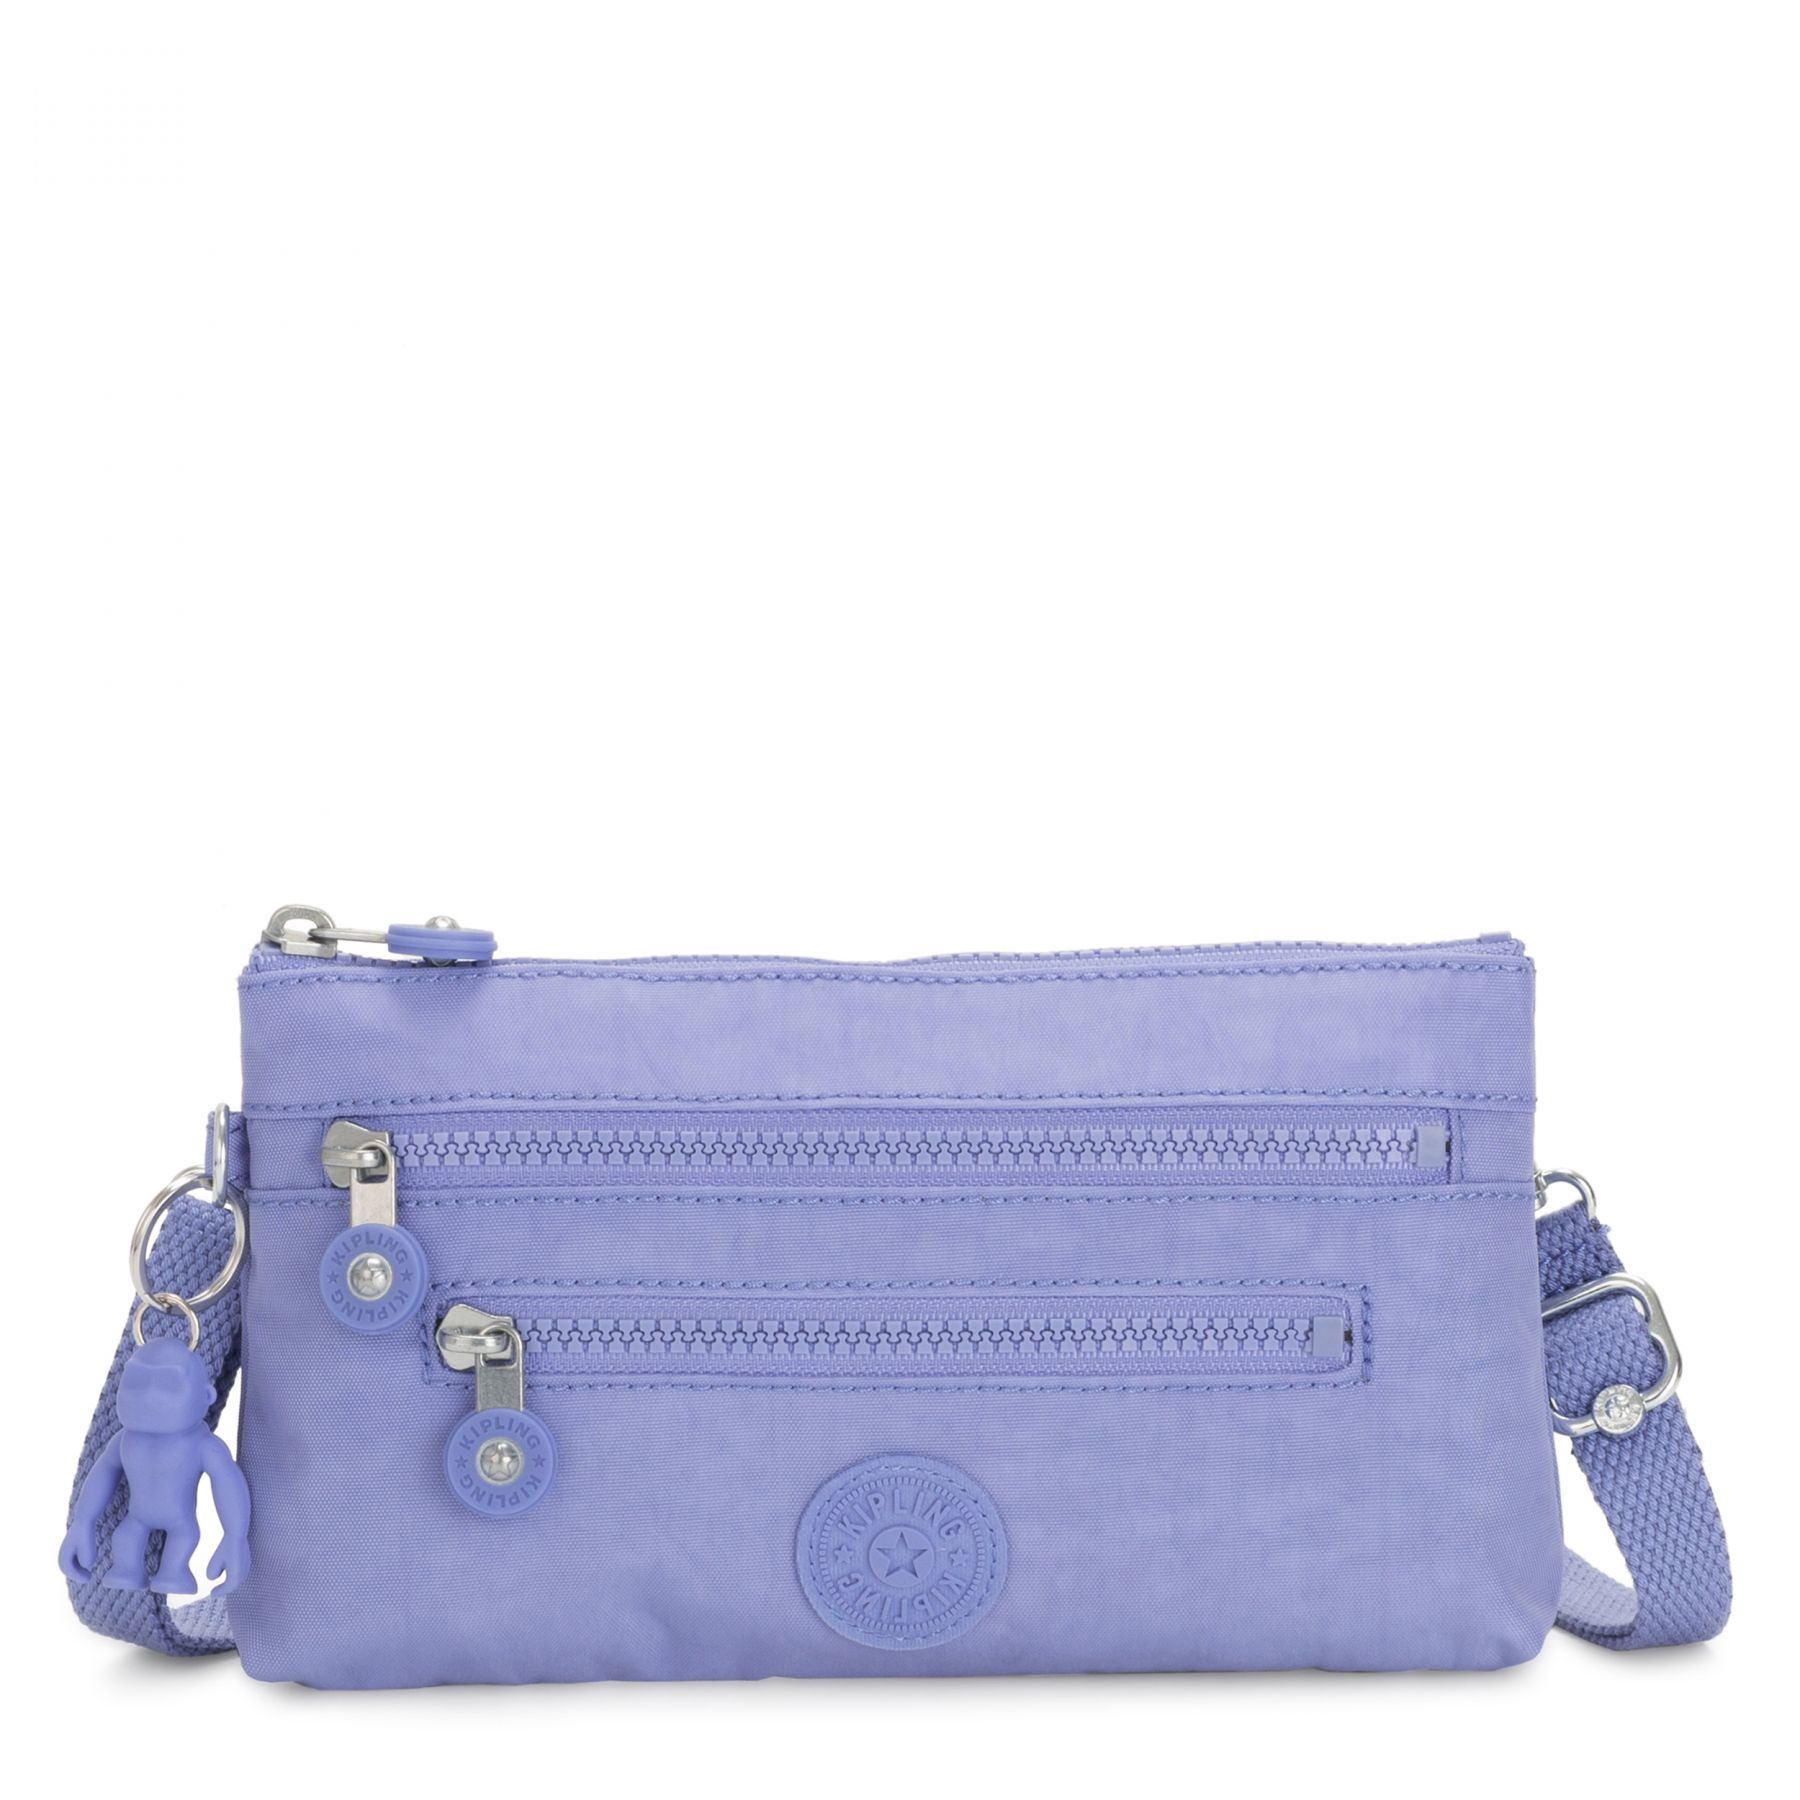 LAURIE SALE by Kipling - Back view